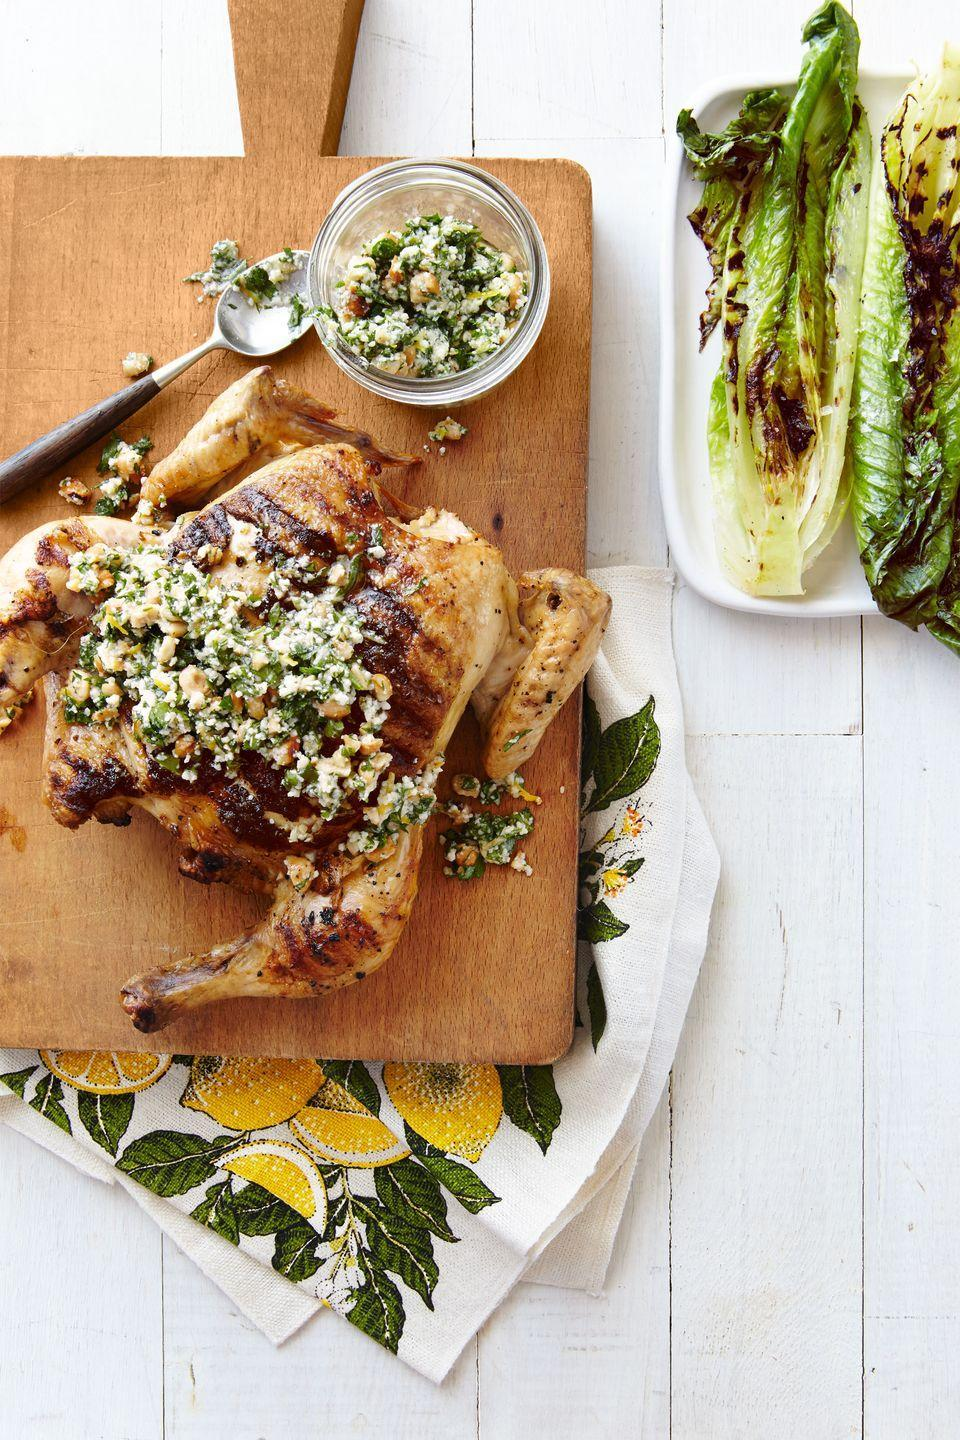 """<p>This grilled chicken deserves a spot in your weekly dinner rotation this spring.</p><p><strong><a href=""""https://www.countryliving.com/food-drinks/recipes/a38079/flattened-chicken-and-grilled-romaine-with-parsley-lemon-sauce-recipe/"""" rel=""""nofollow noopener"""" target=""""_blank"""" data-ylk=""""slk:Get the recipe"""" class=""""link rapid-noclick-resp"""">Get the recipe</a>.</strong></p>"""